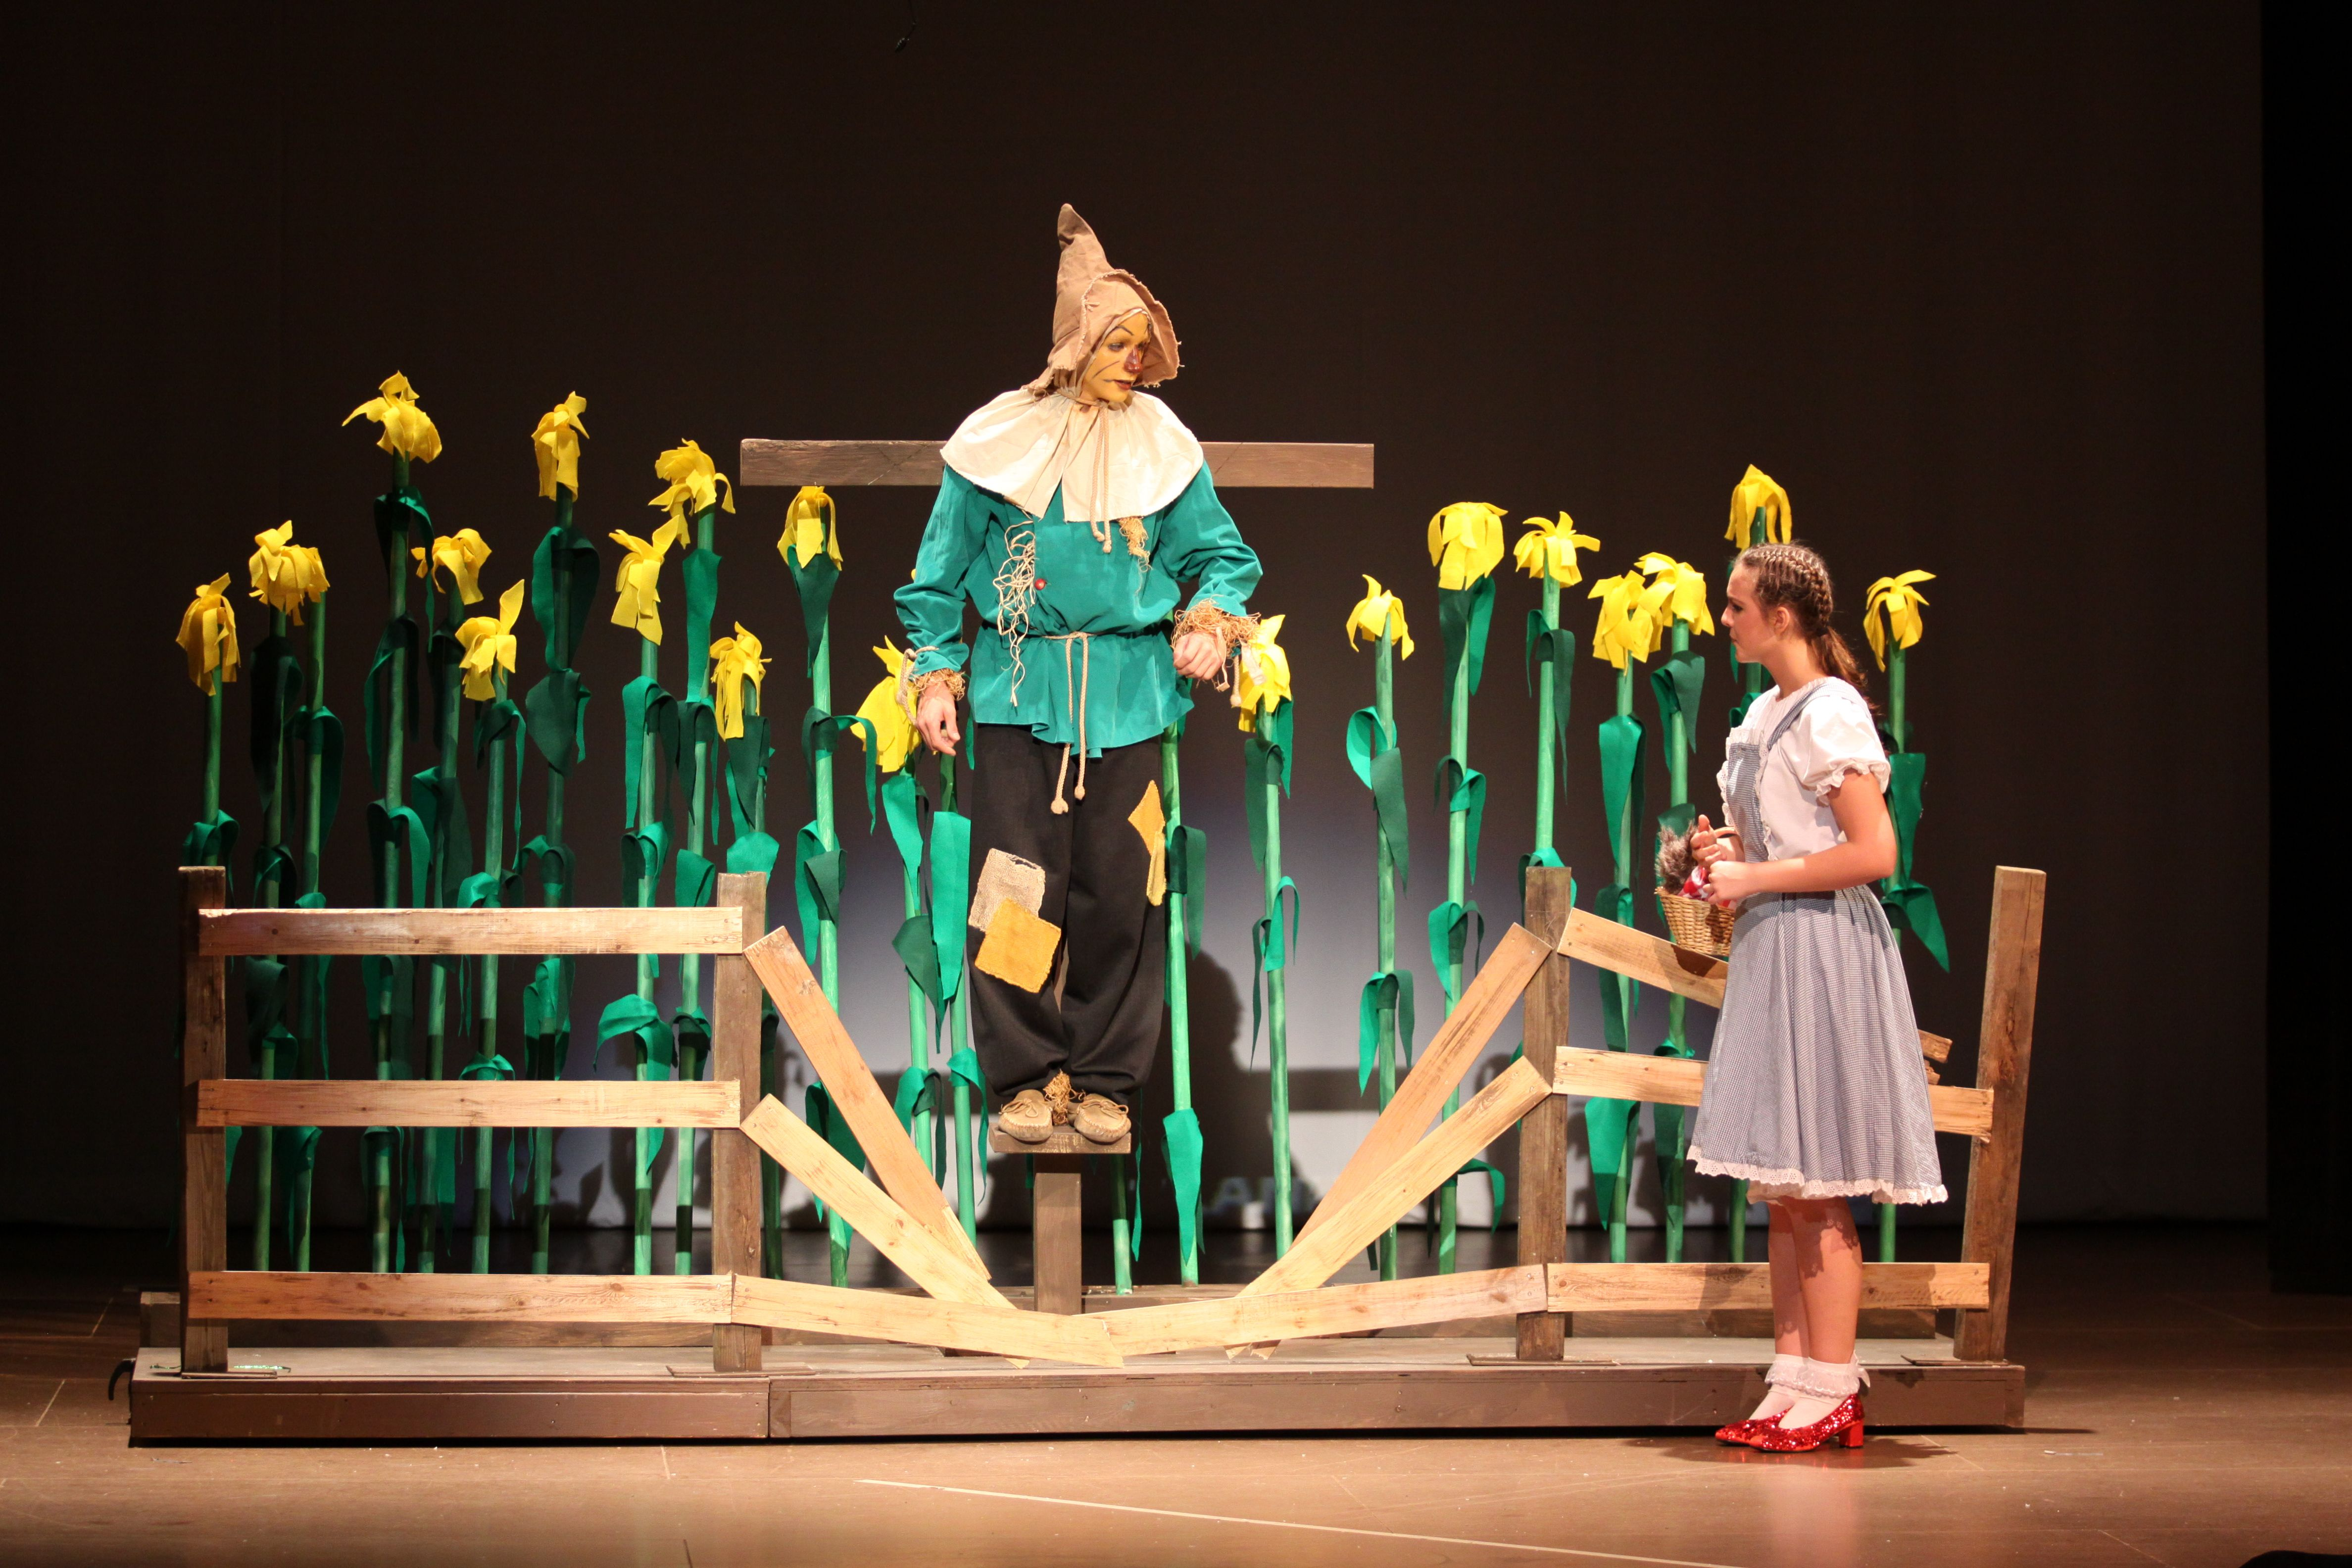 wizard of oz set design google search wizard of oz reference